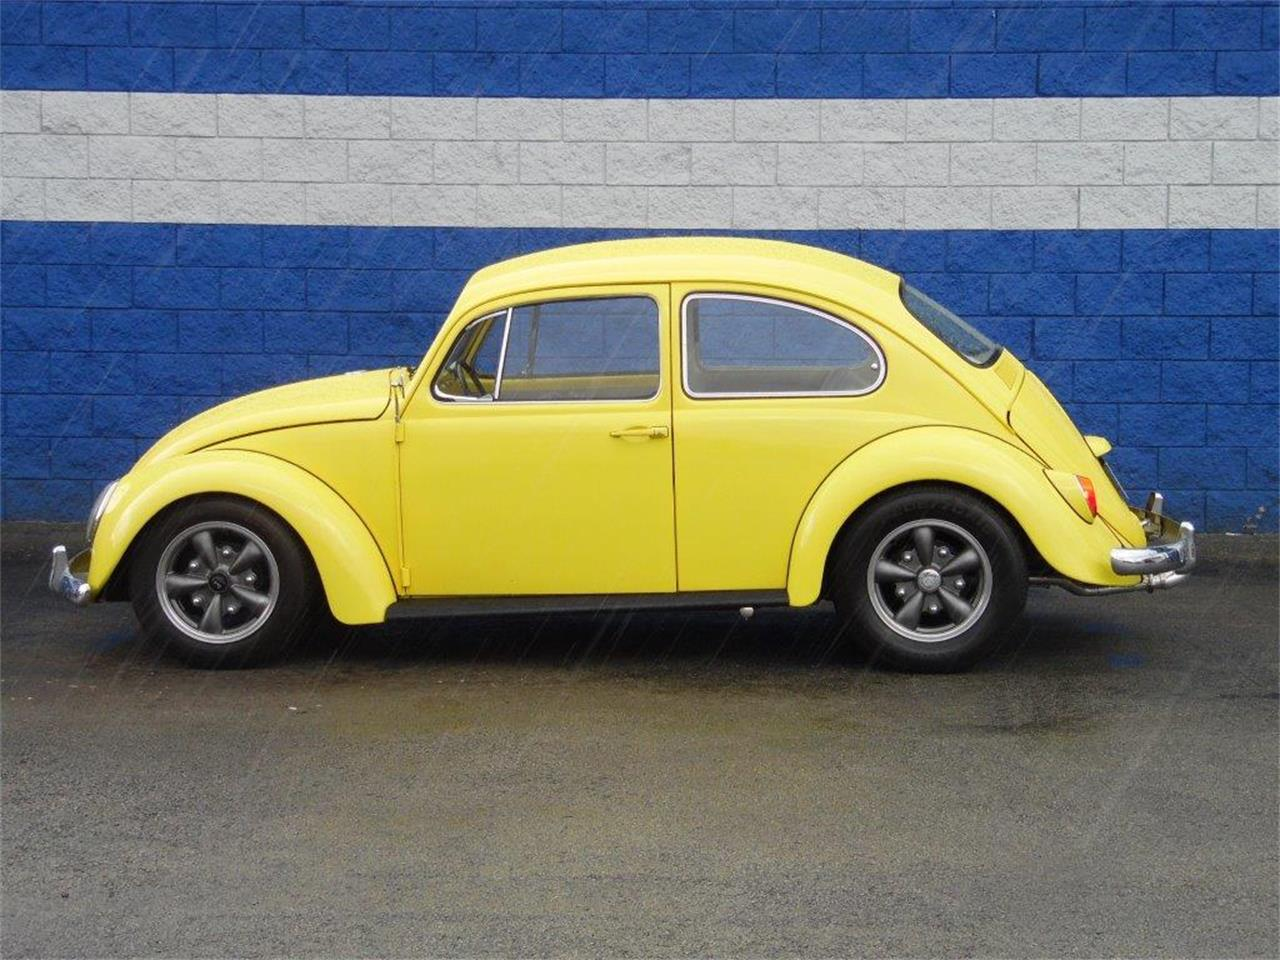 Large Picture of Classic '65 Beetle located in CONNELLSVILLE Pennsylvania - $16,900.00 - Q8JE